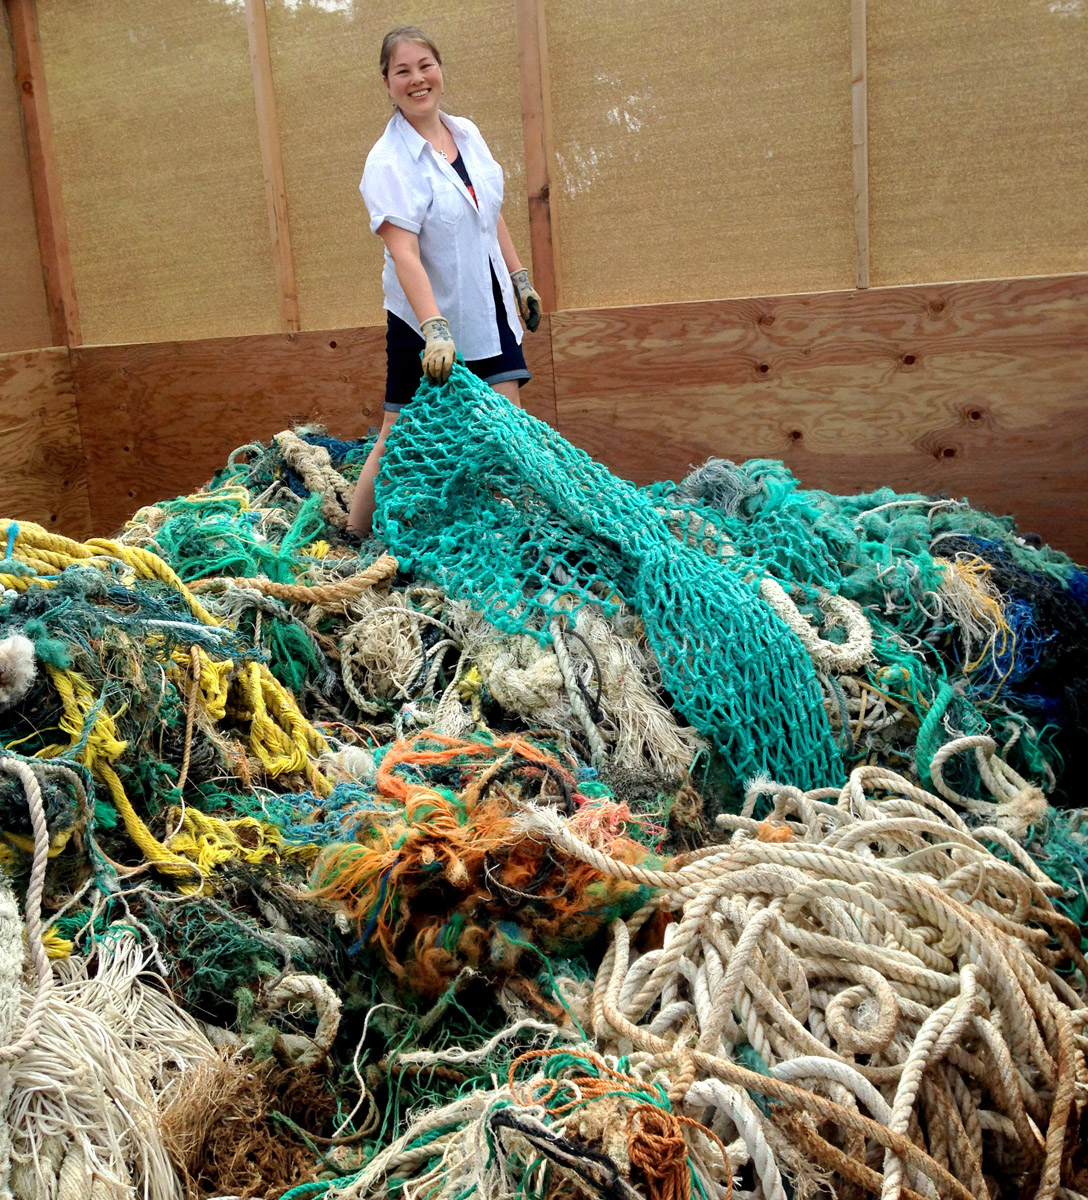 Two tons of fishing rope, Kauai